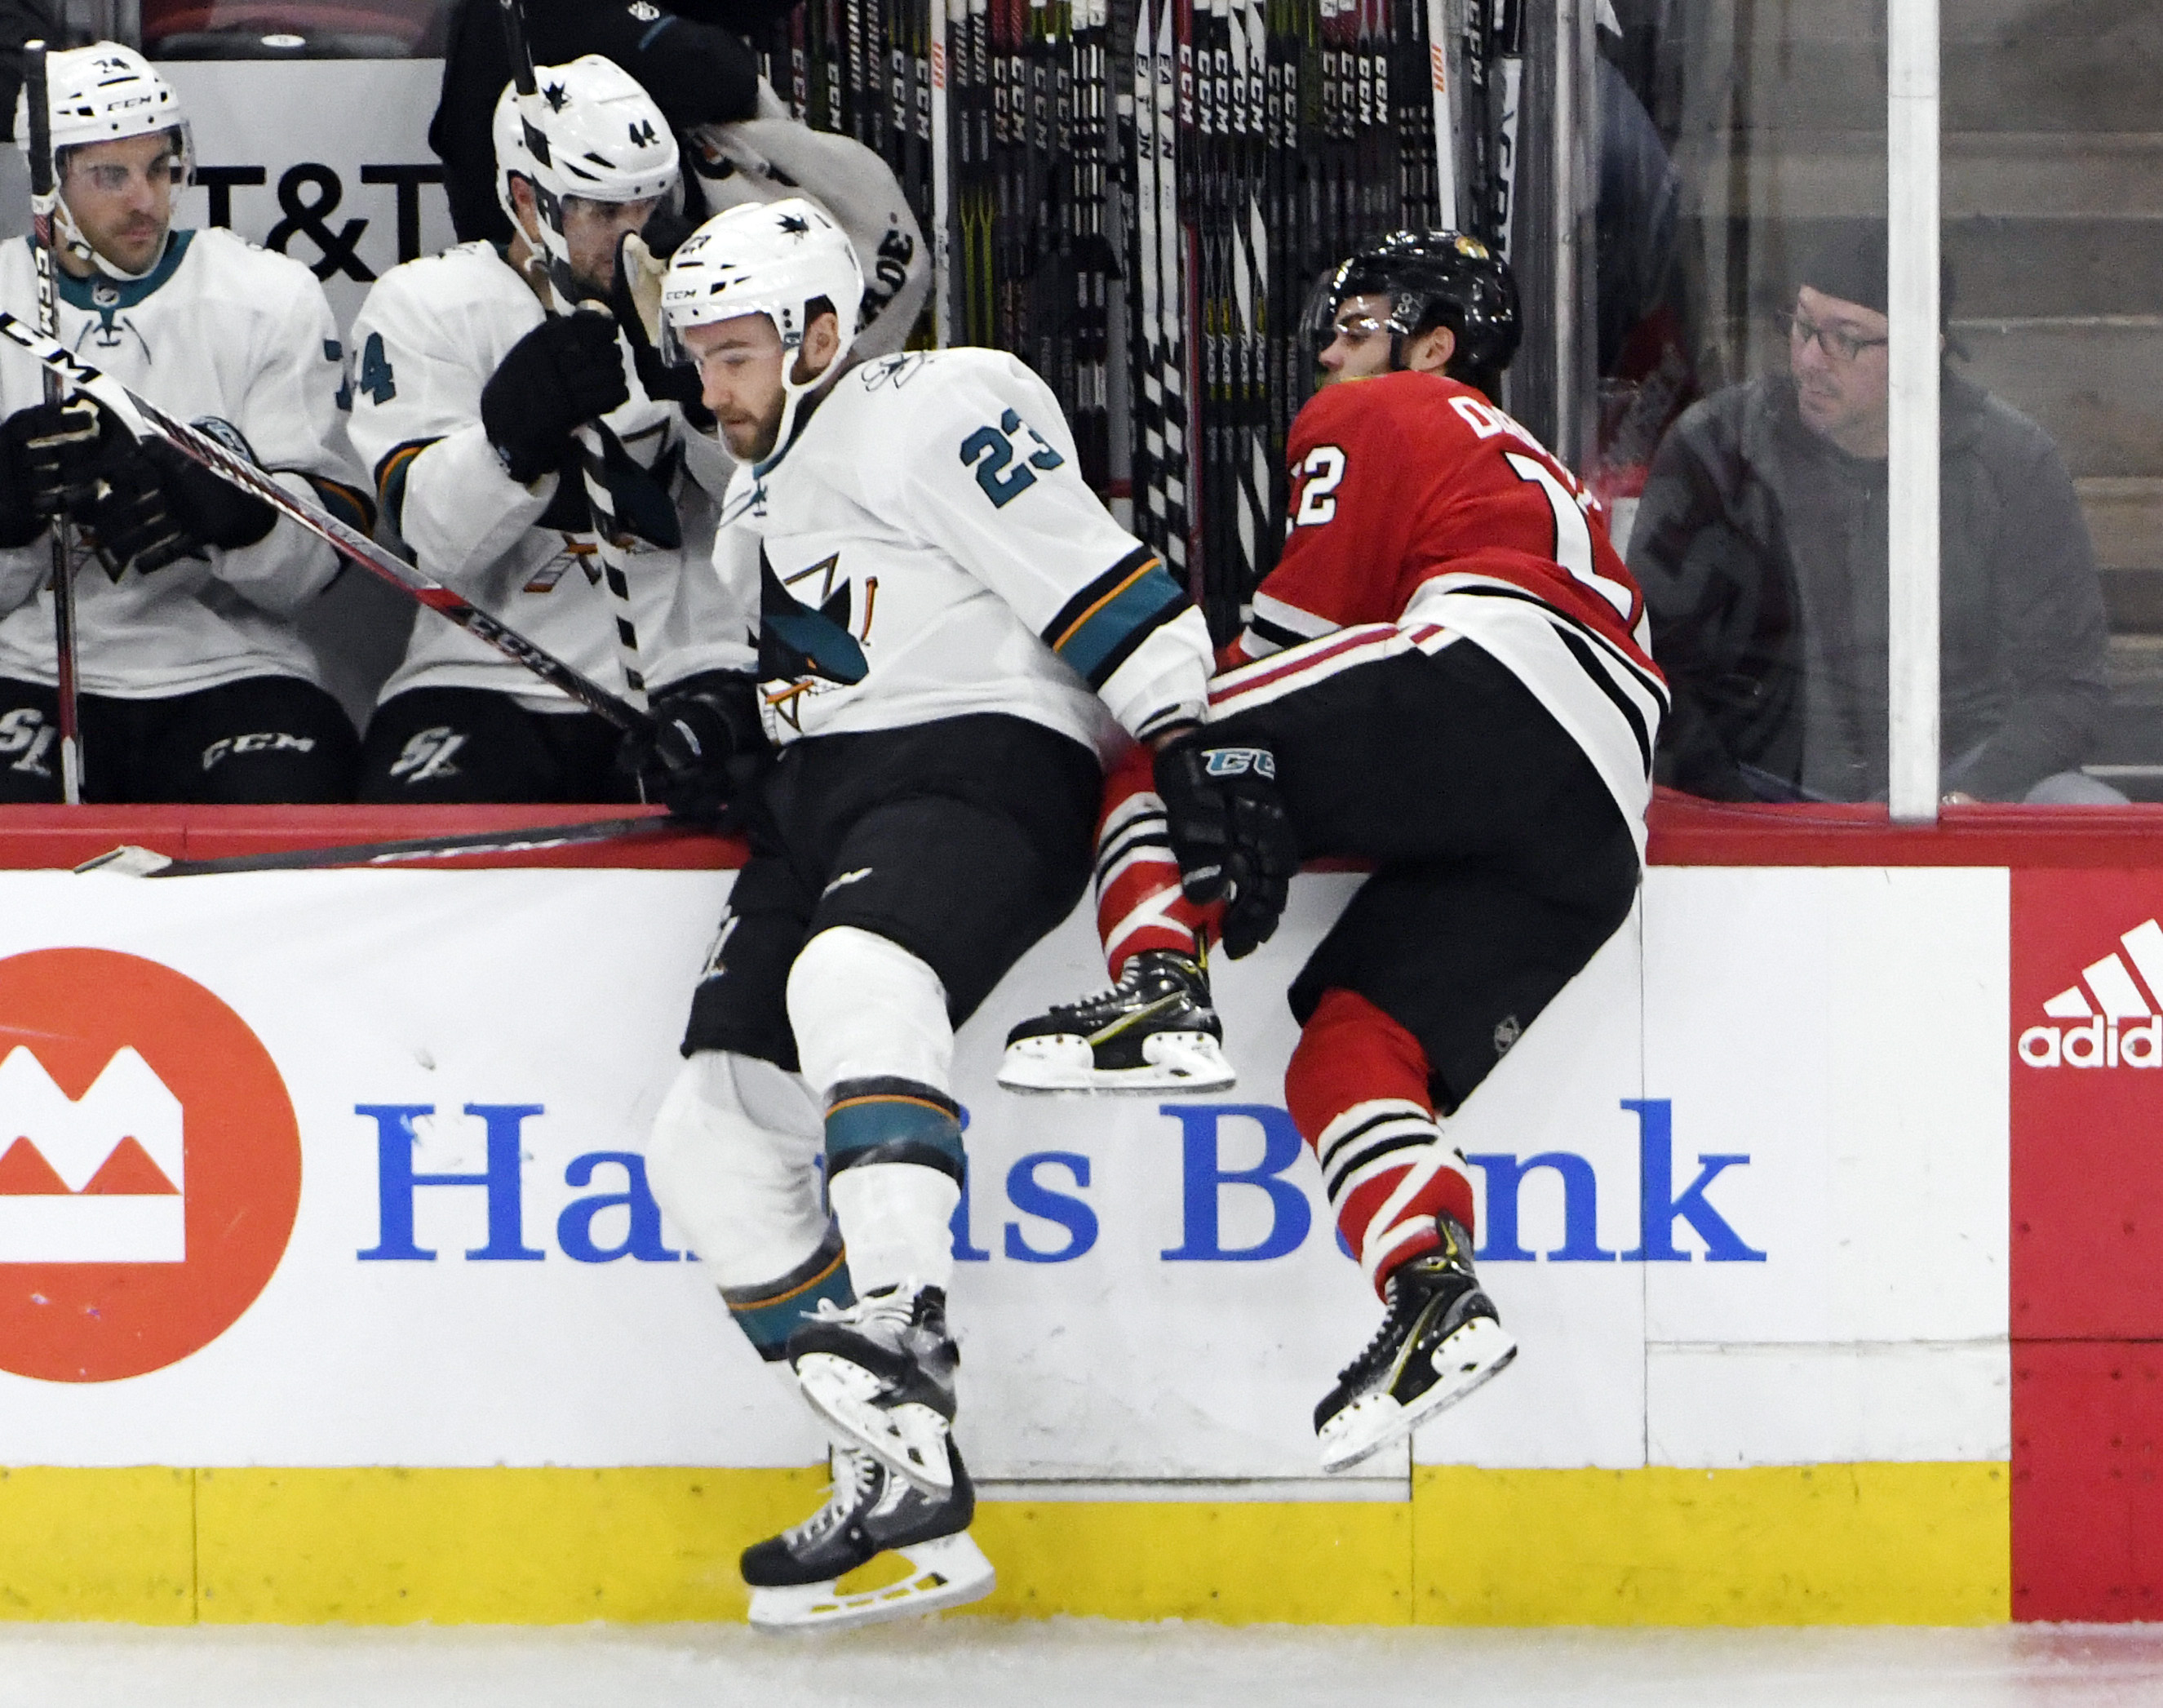 Mar 26, 2018; Chicago, IL, USA; San Jose Sharks right wing Barclay Goodrow (23) checks Chicago Blackhawks right wing Alex DeBrincat (12) during the second period at United Center.